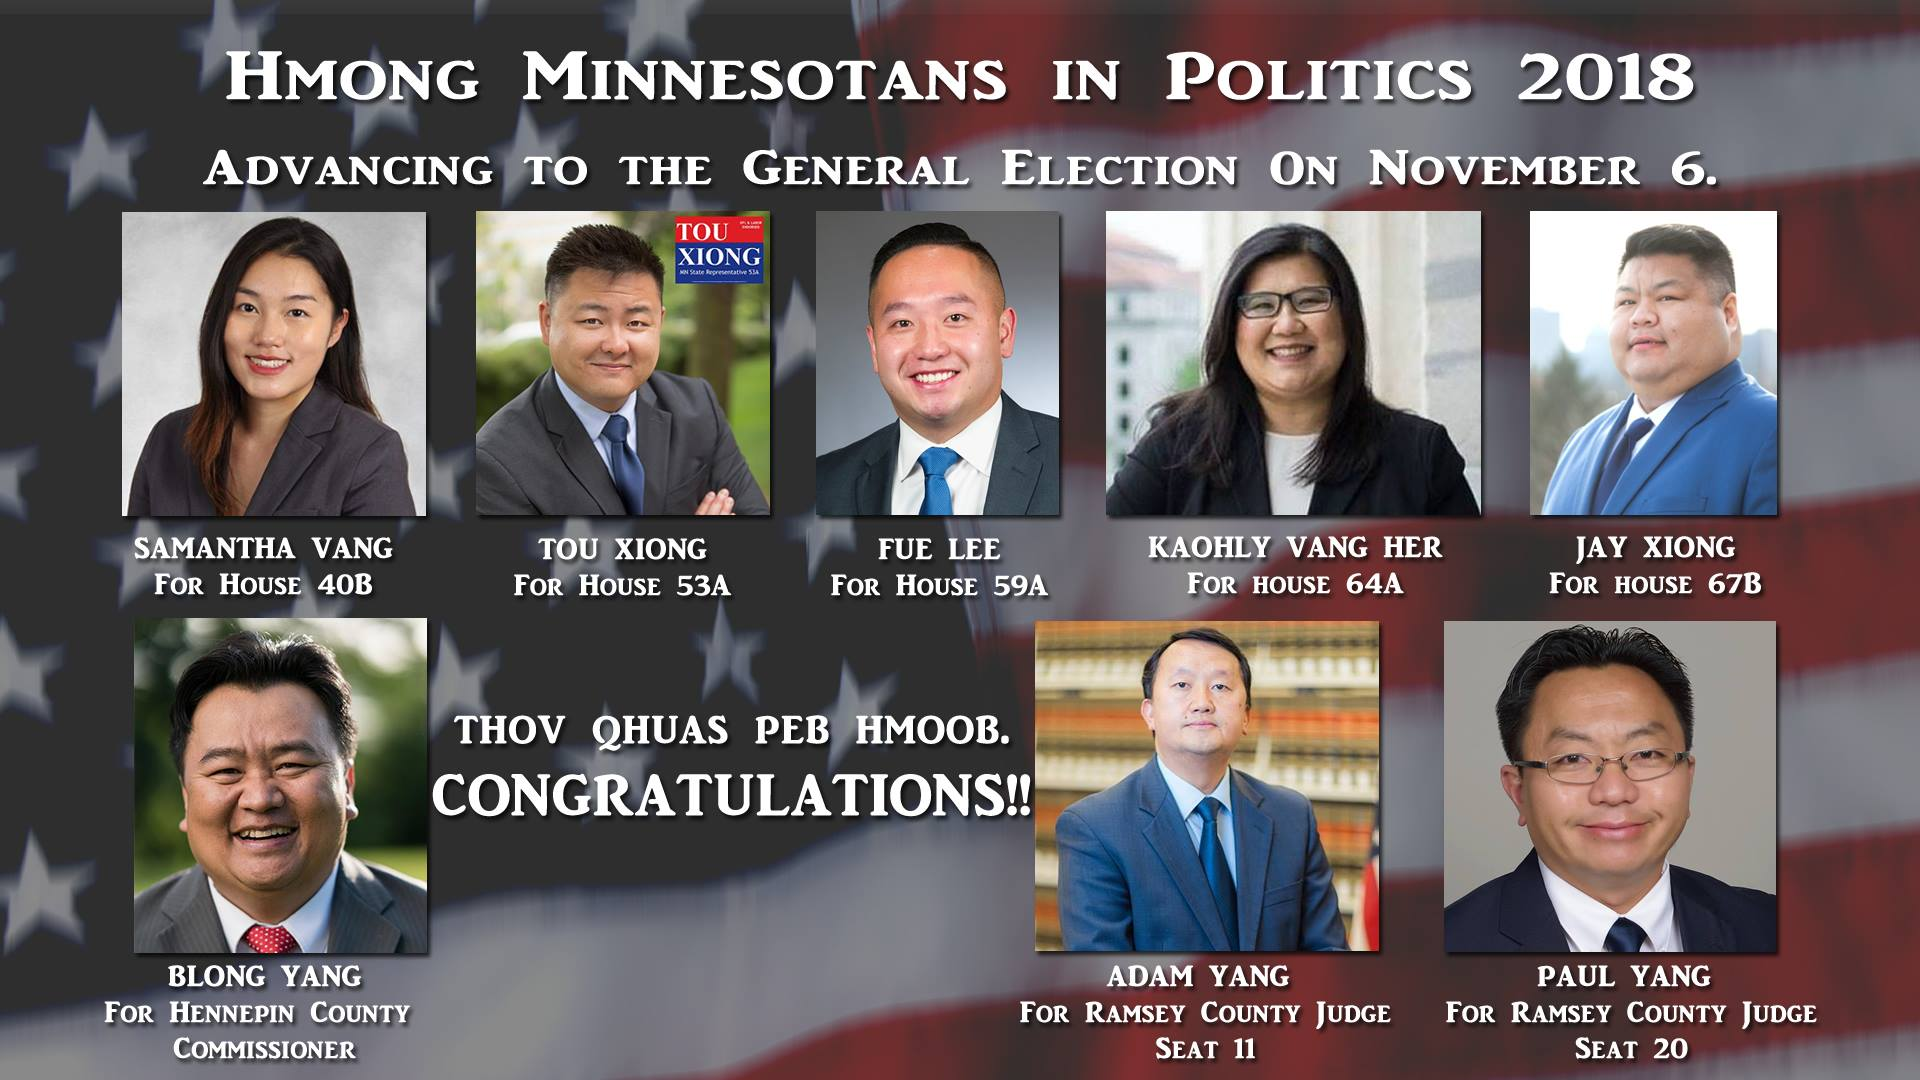 Hmong American political candidates win Primary Election in Minnesota.